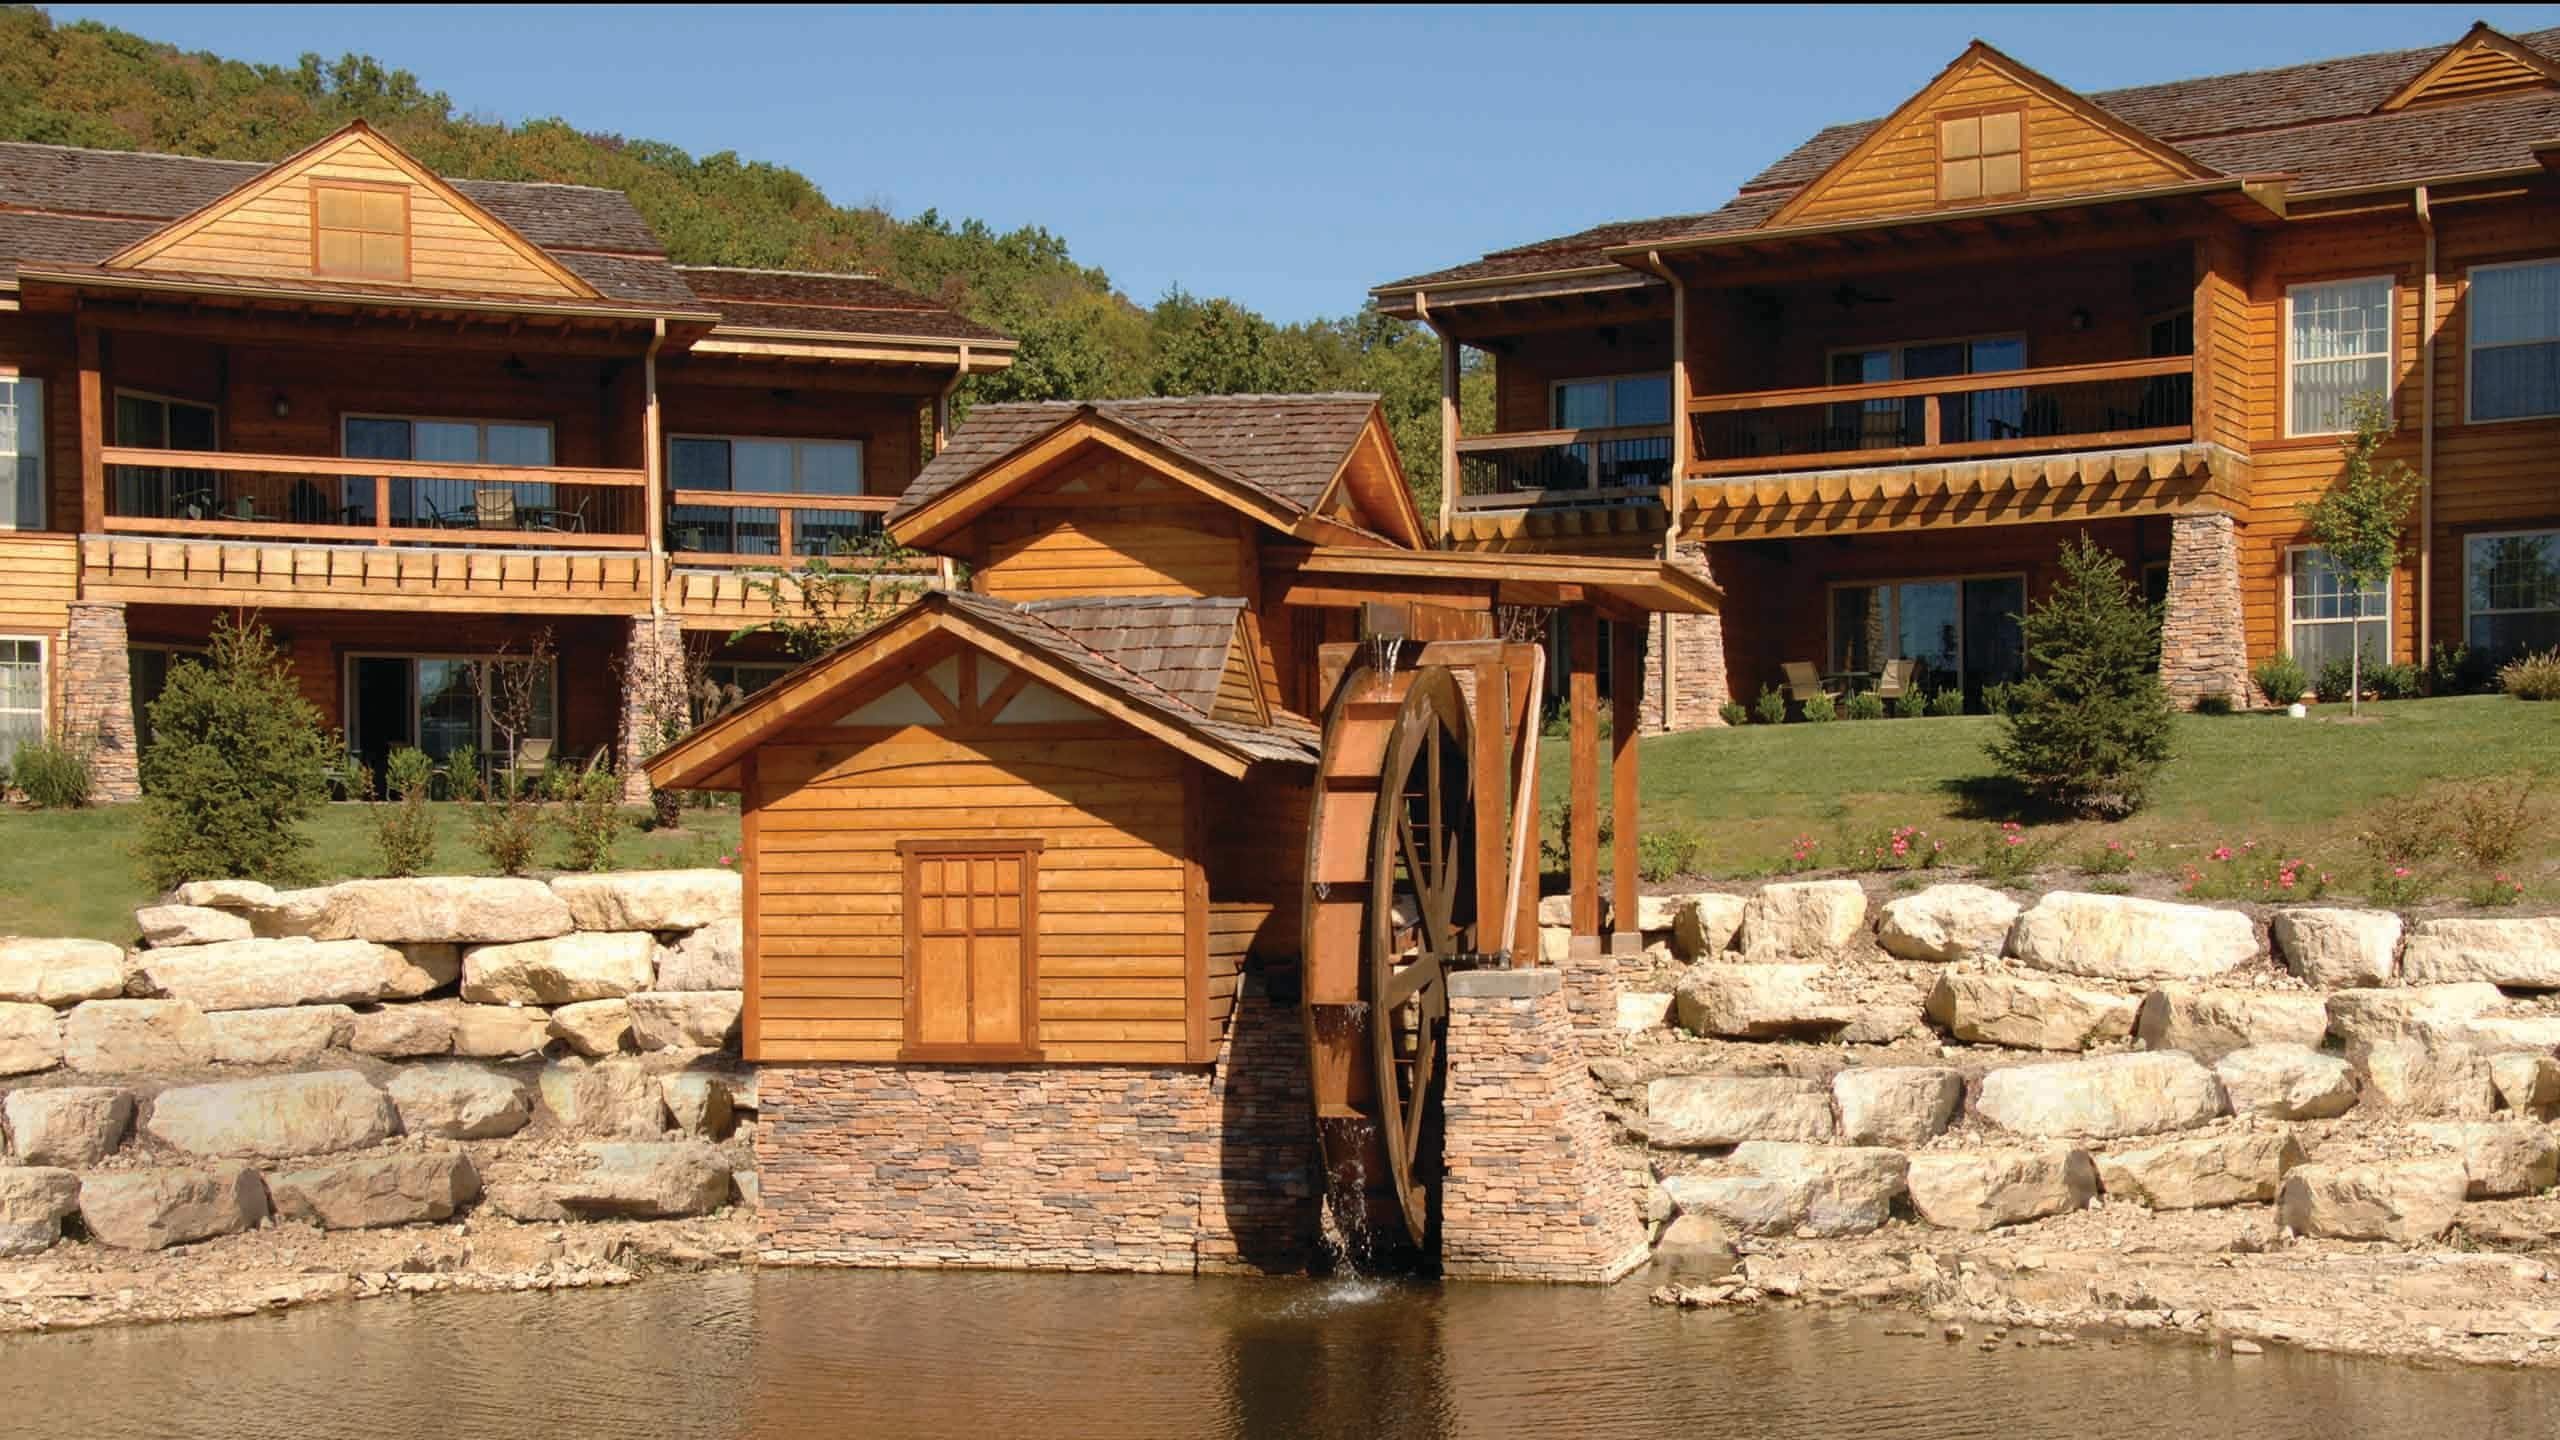 The Lodges at Timber Ridge by Welk Resorts | Disney Vacation